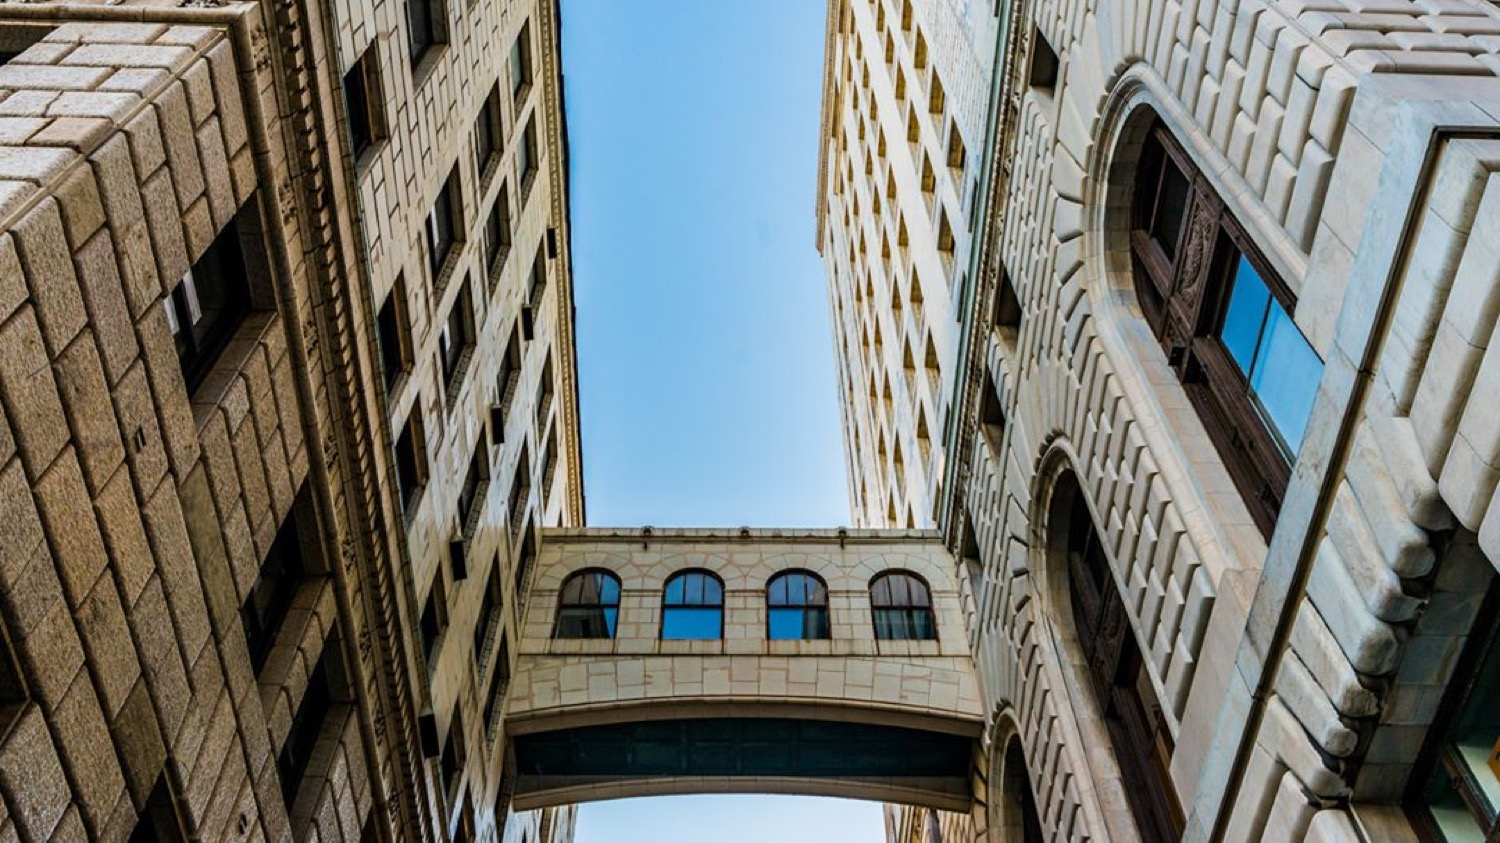 <p>@this_is_cincy / Showcasing a punchy and vibrant downtown / Followers: 47 / Image courtesy of IG user @this_is_cincy // Published: 11.12.17</p>